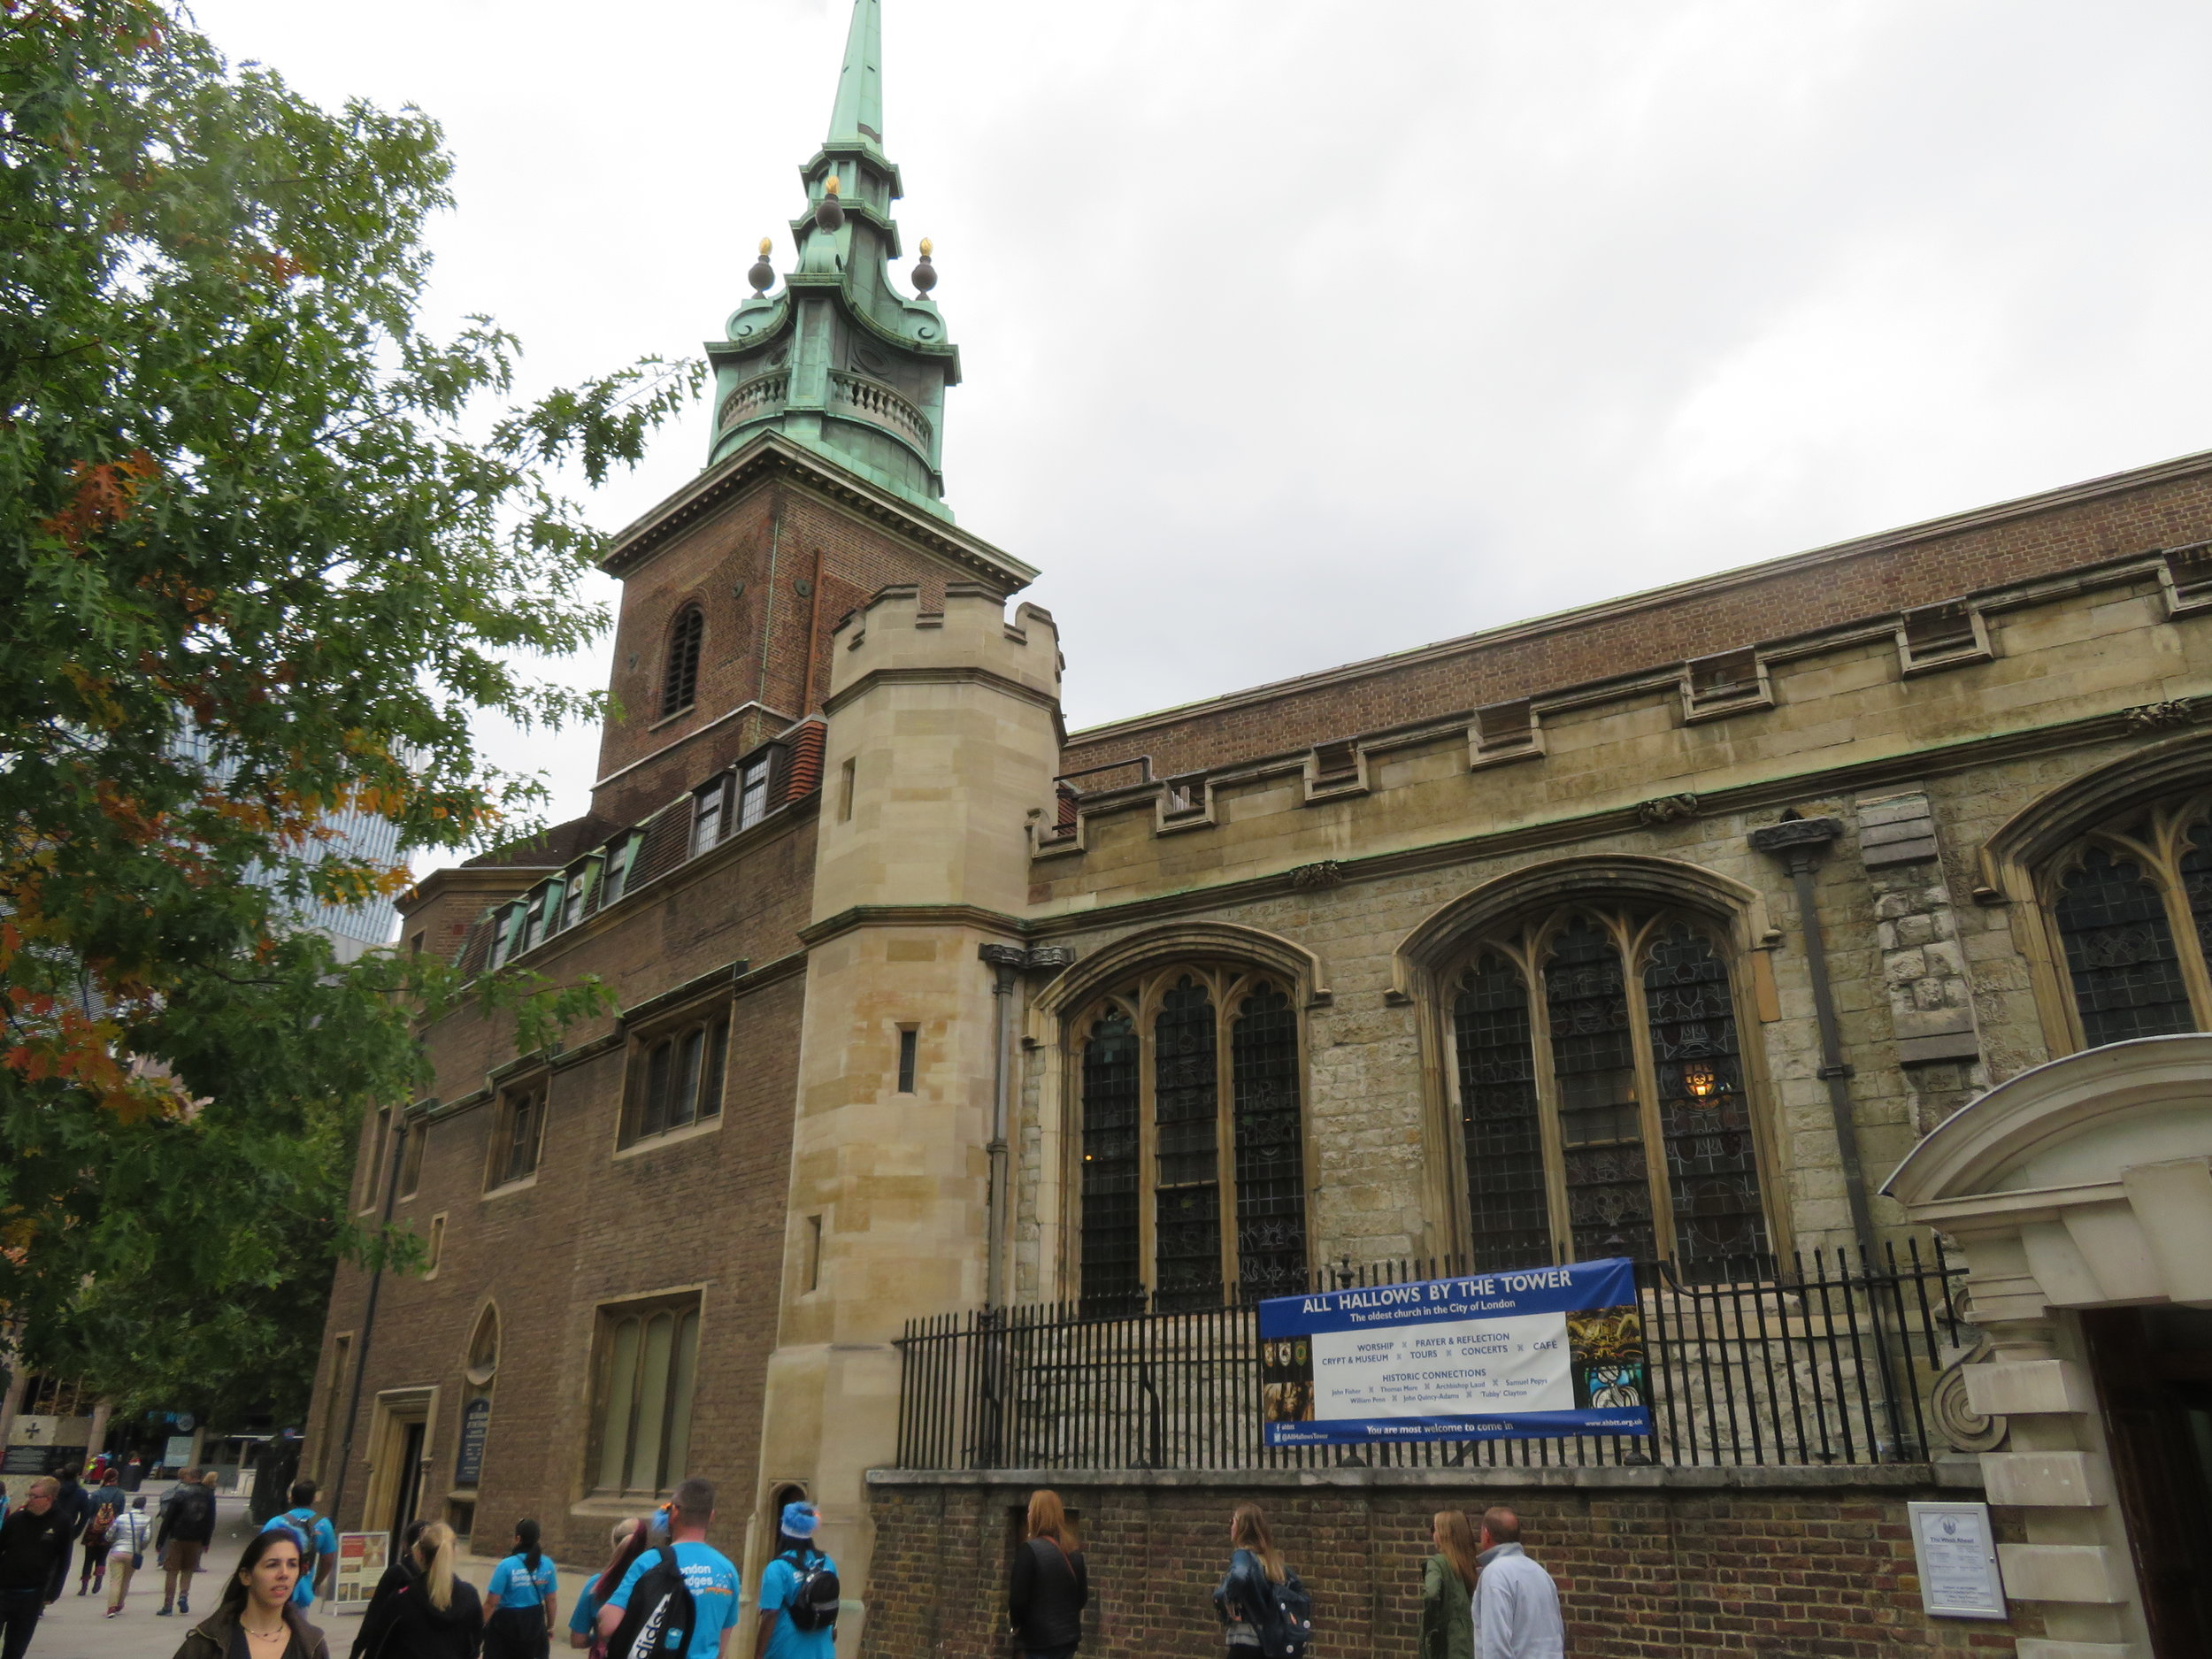 All Hallows by the Tower is the oldest church in London.